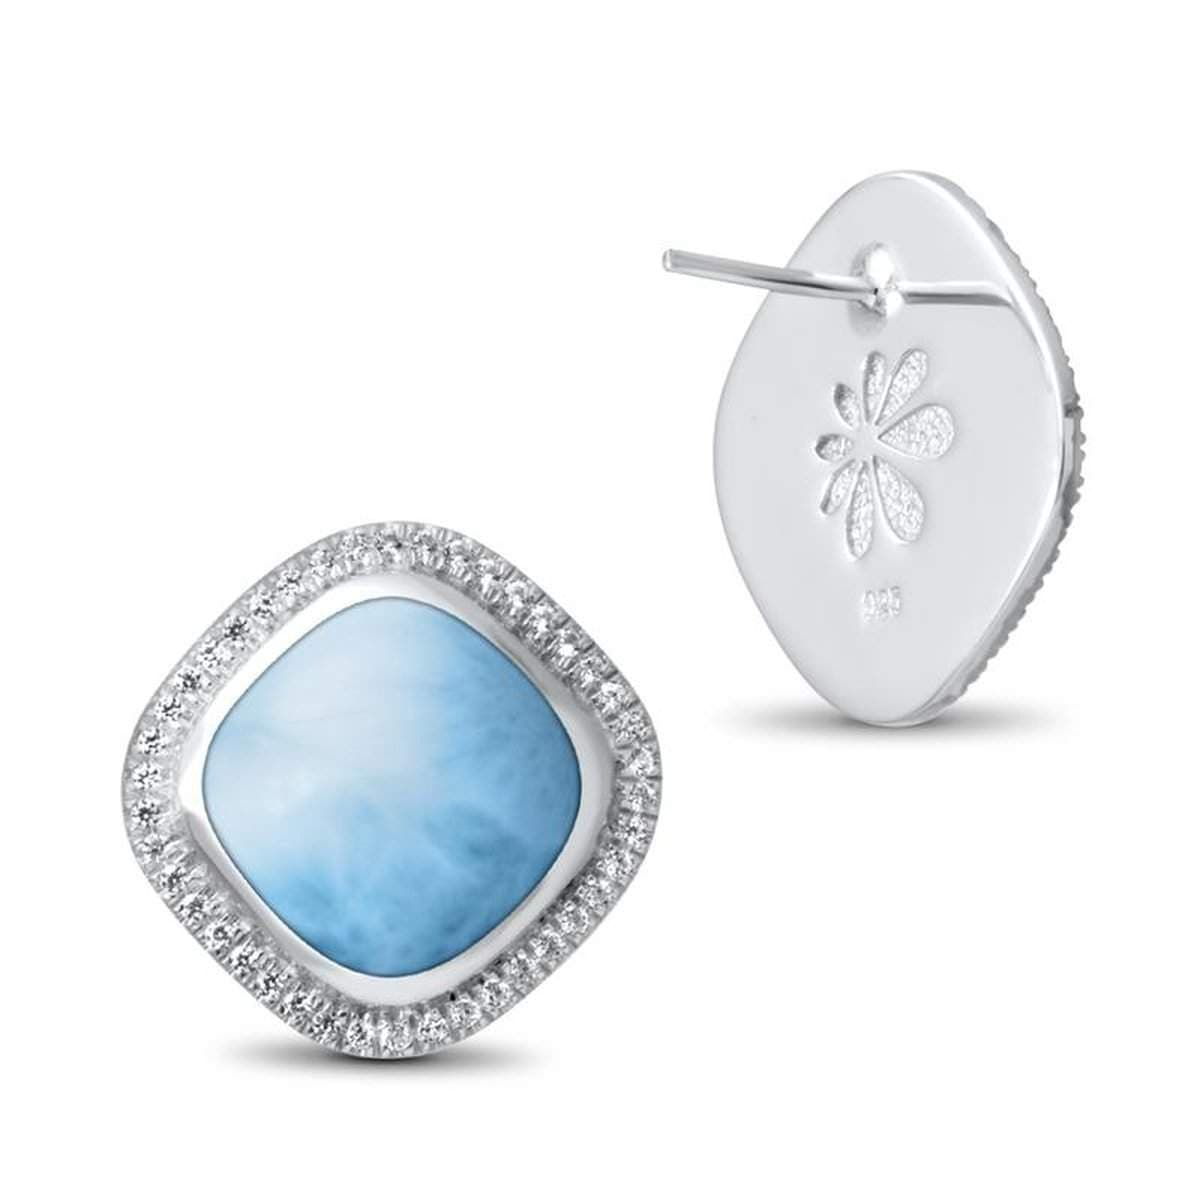 Clarity Cushion Earrings - Eclar01-00 - Marahlago Larimar